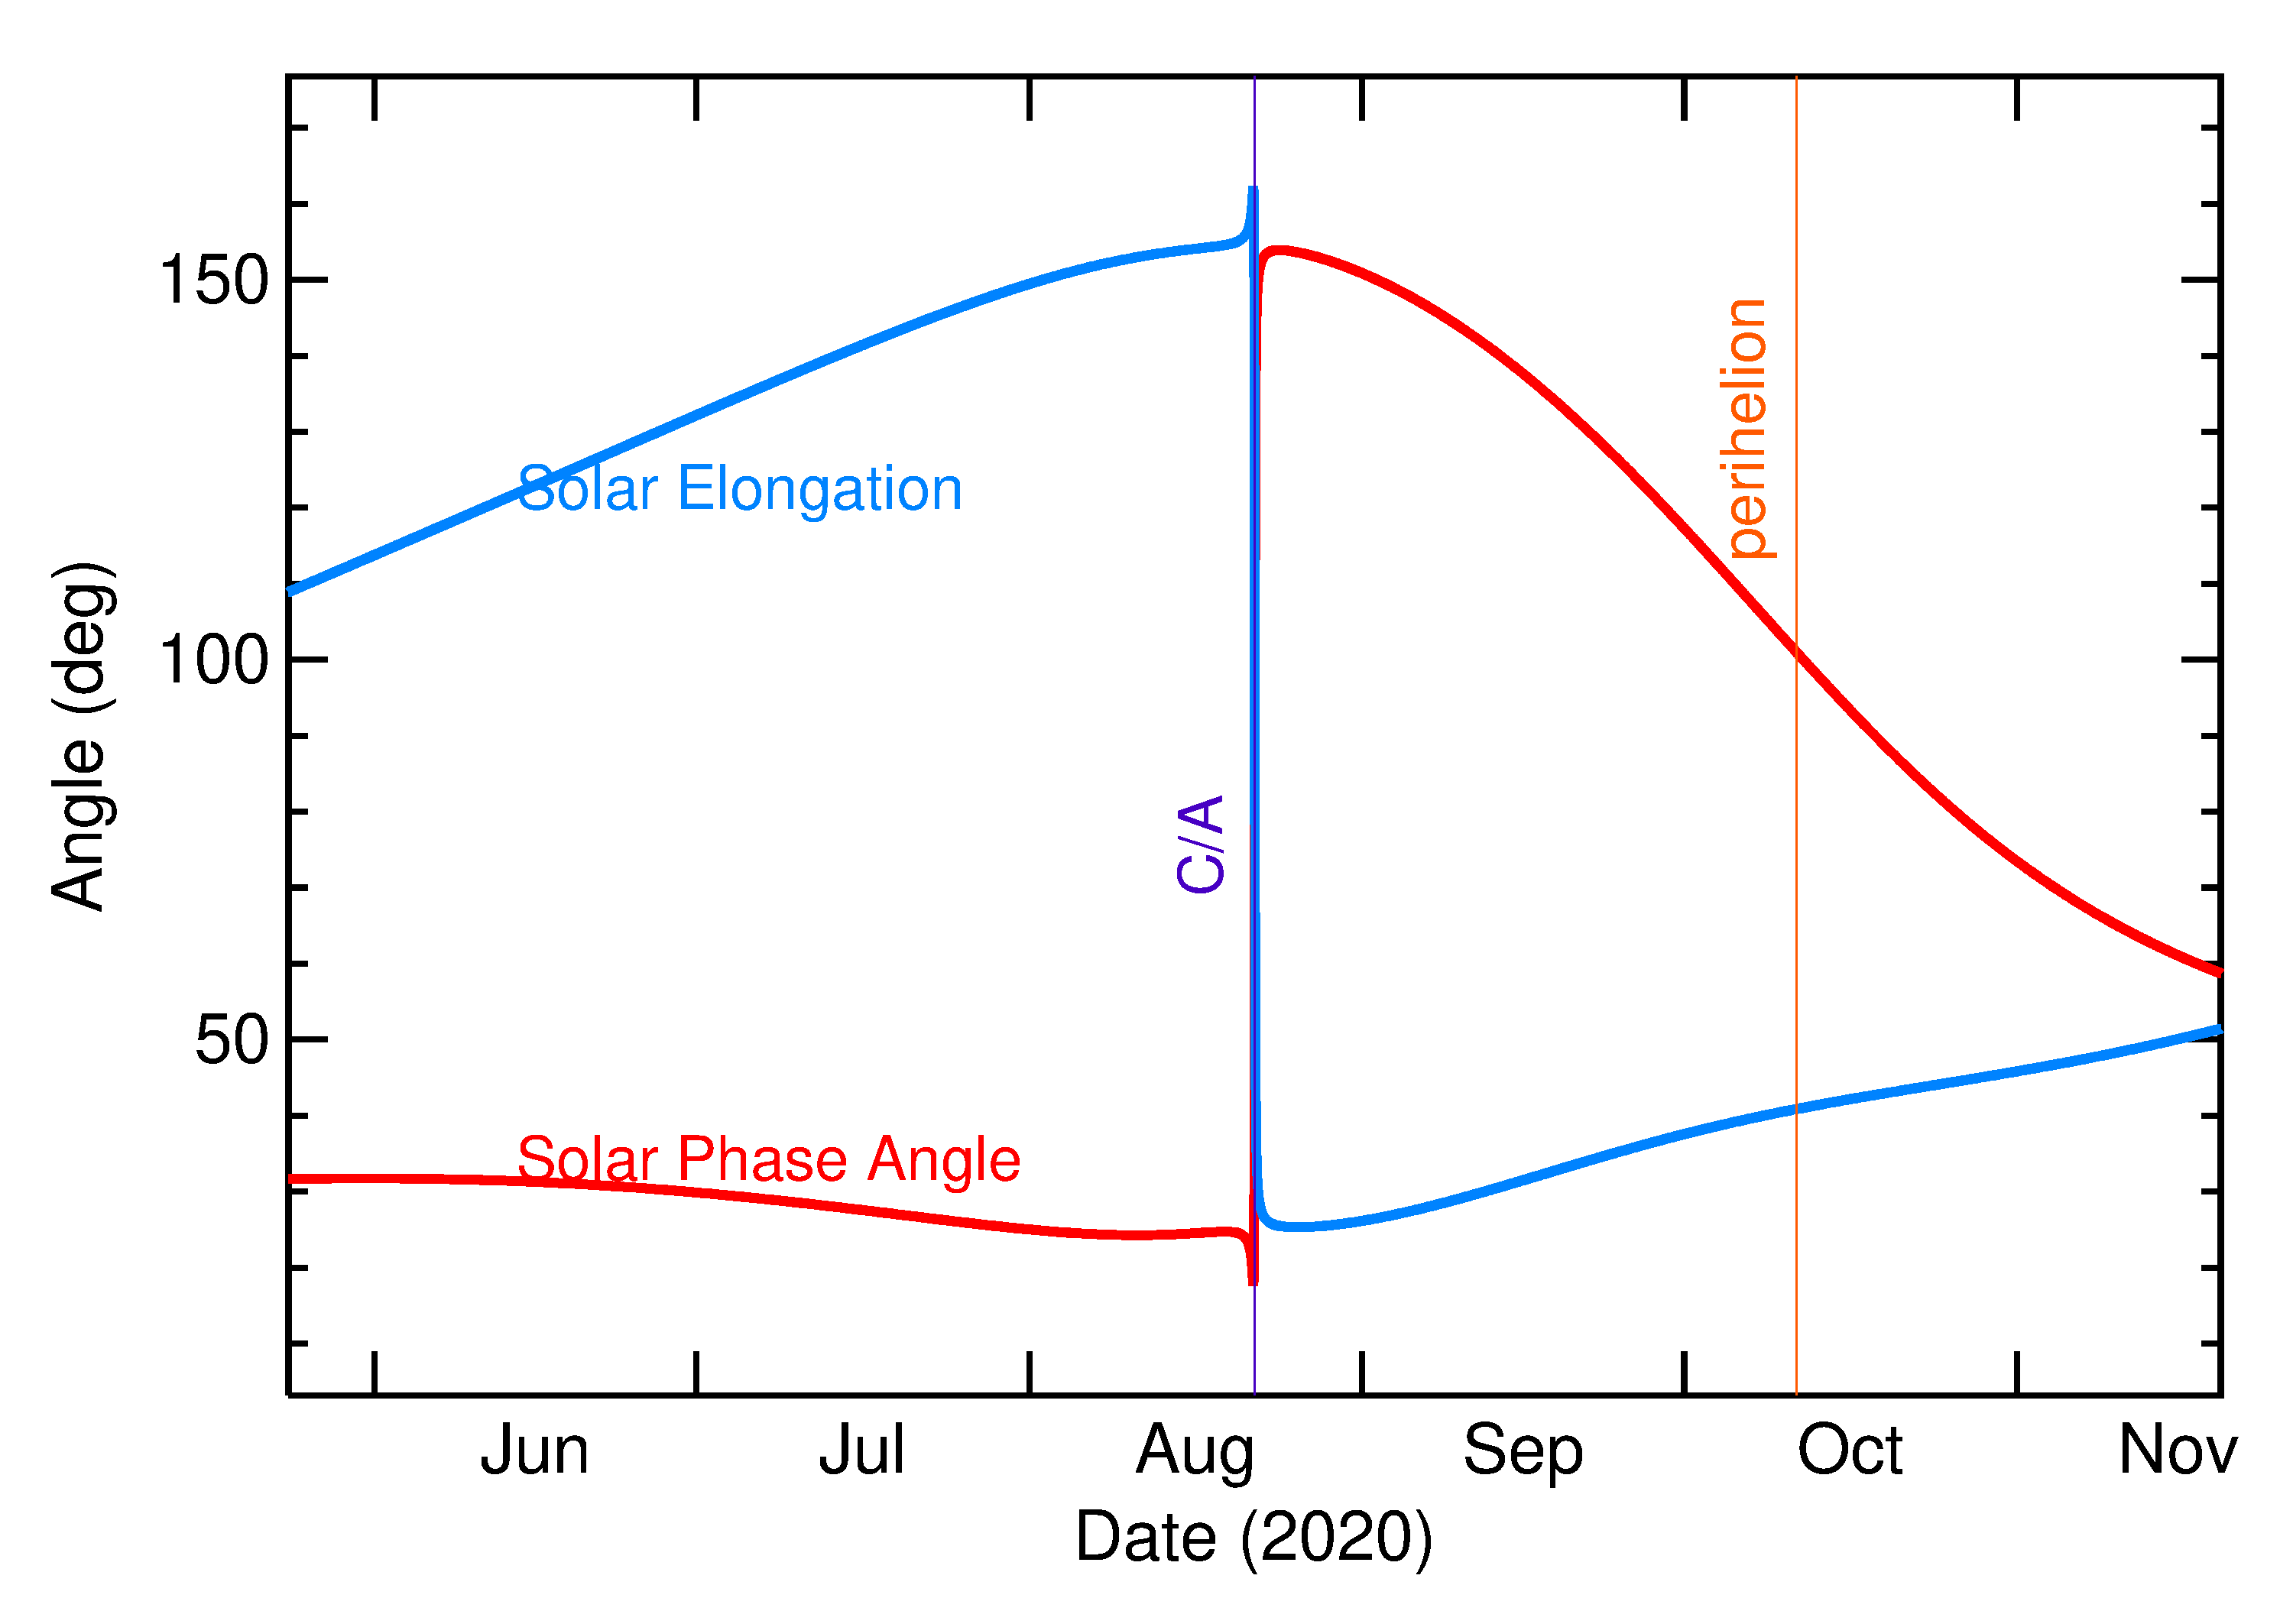 Solar Elongation and Solar Phase Angle of 2020 QY2 in the months around closest approach